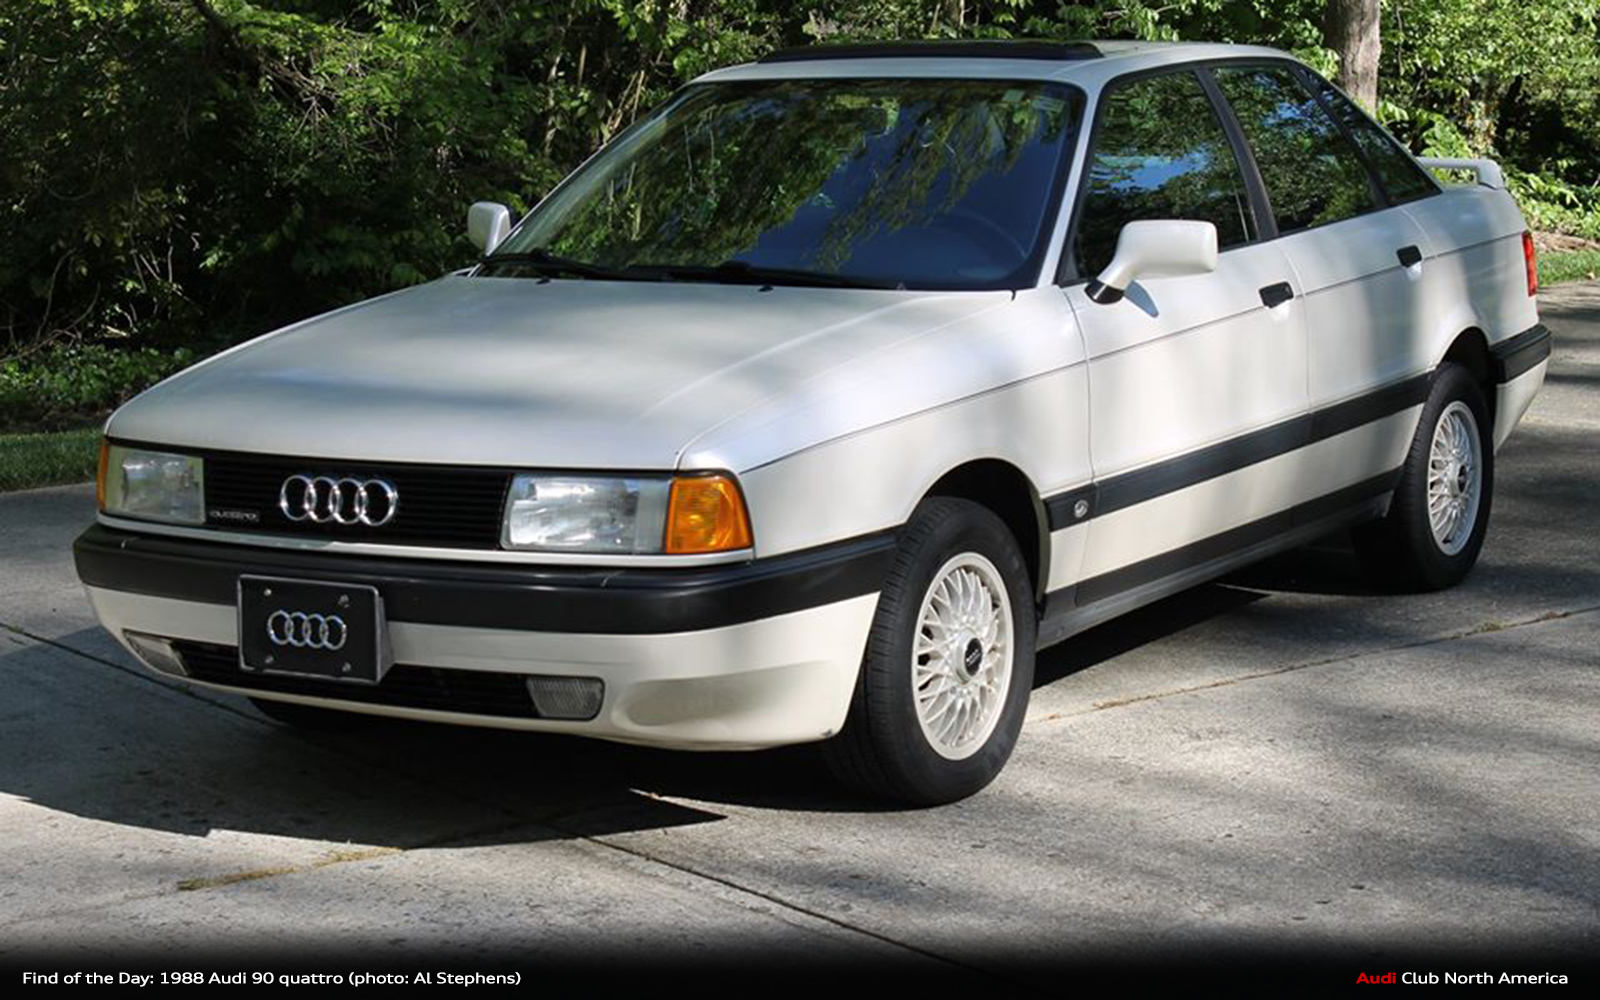 Find of the Day: 1988 Audi 90 quattro